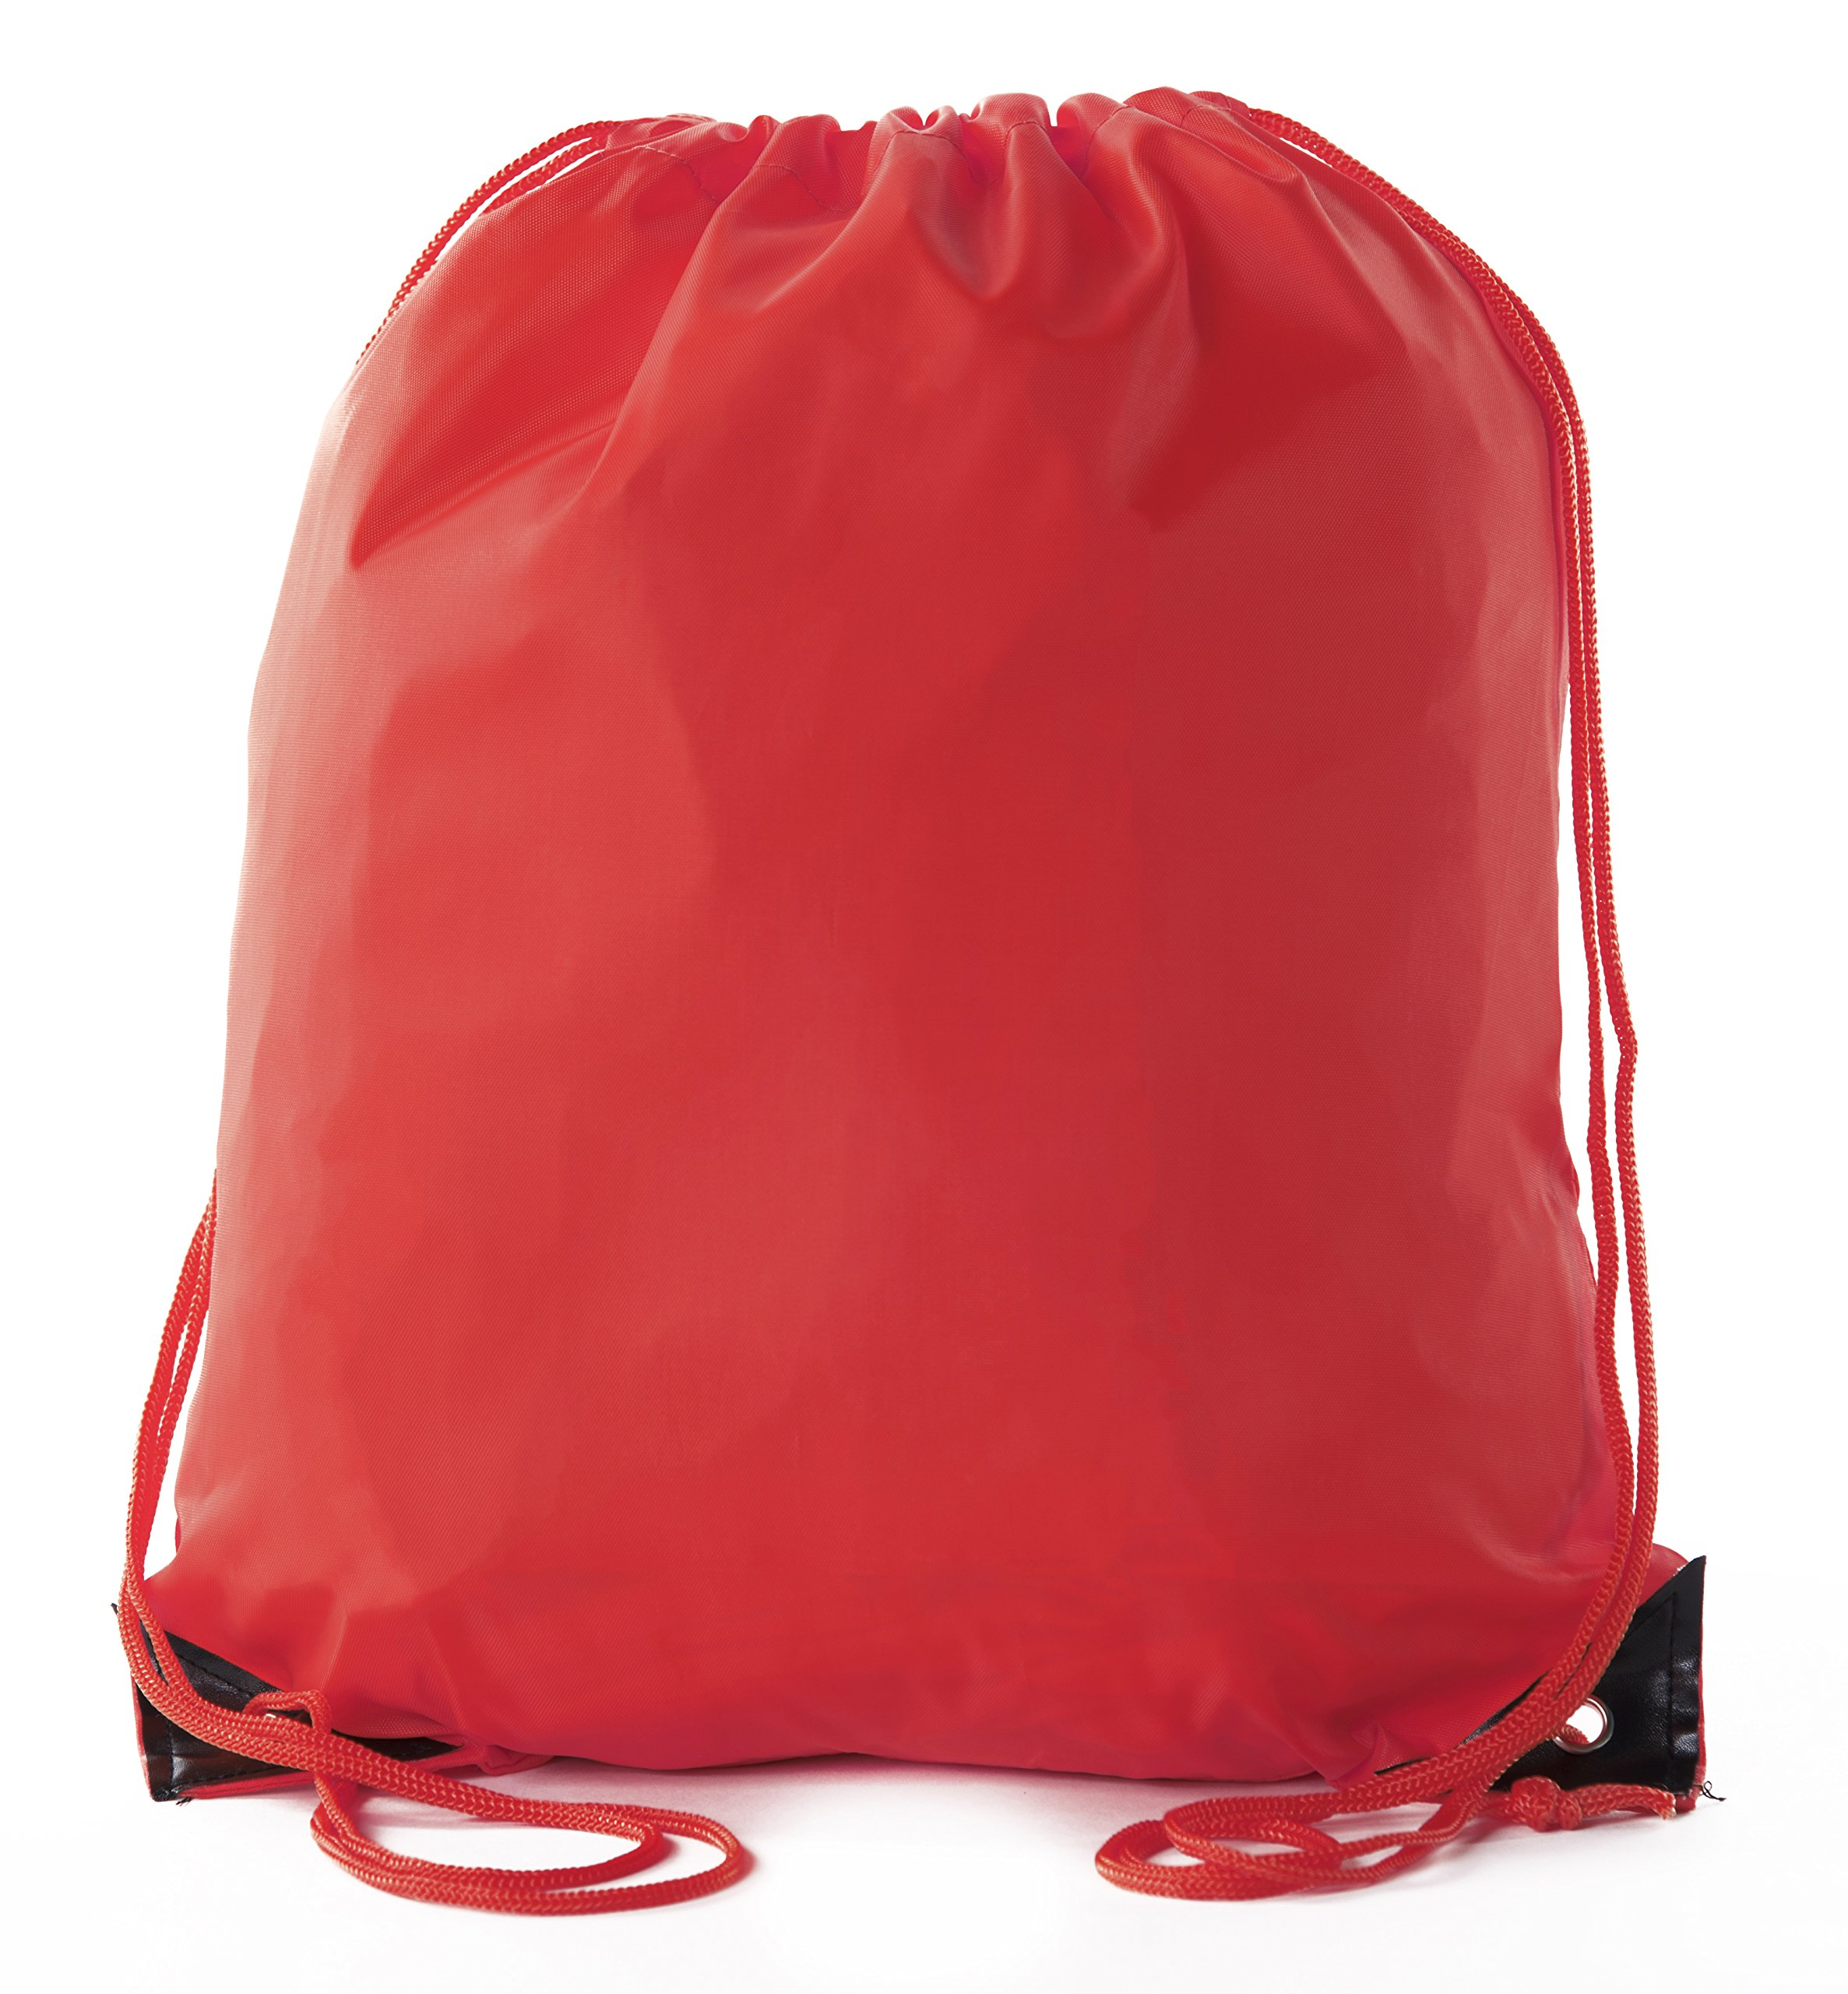 Mato & Hash Basic Drawstring Tote Cinch Sack Promotional Backpack Bag - 100PK Red CA2500 - 2 by Mato & Hash